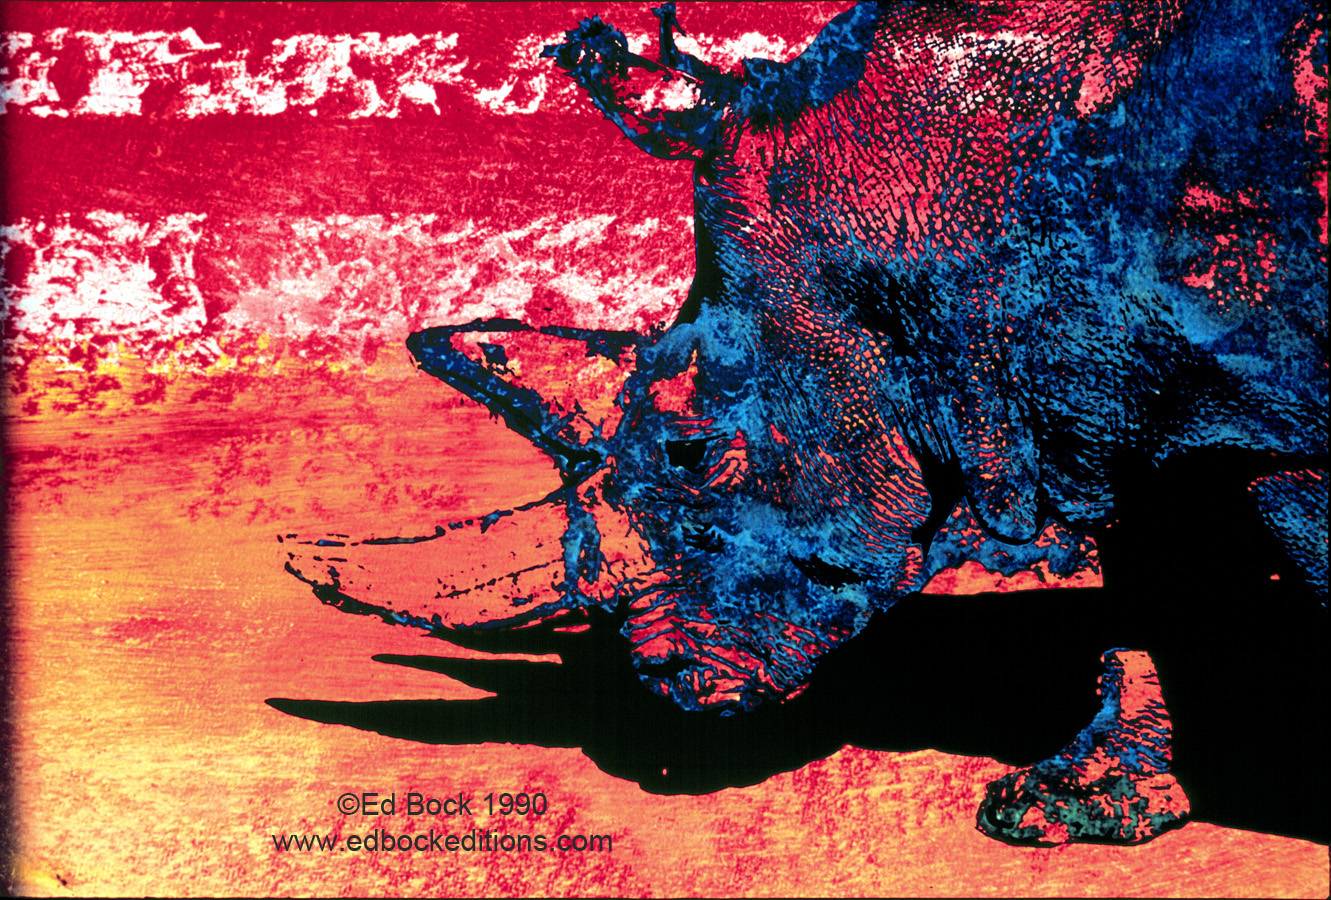 Rhino, Rhinoceros, Blue, animal, orange, red, Mixed media, art, acrylic, watercolor, fine art, prints, artwork, collage, poster, photo, canvas, giclee, painting, contemporary, modern, abstract, colorful, art prints from Ed Bock, EdBockEditions